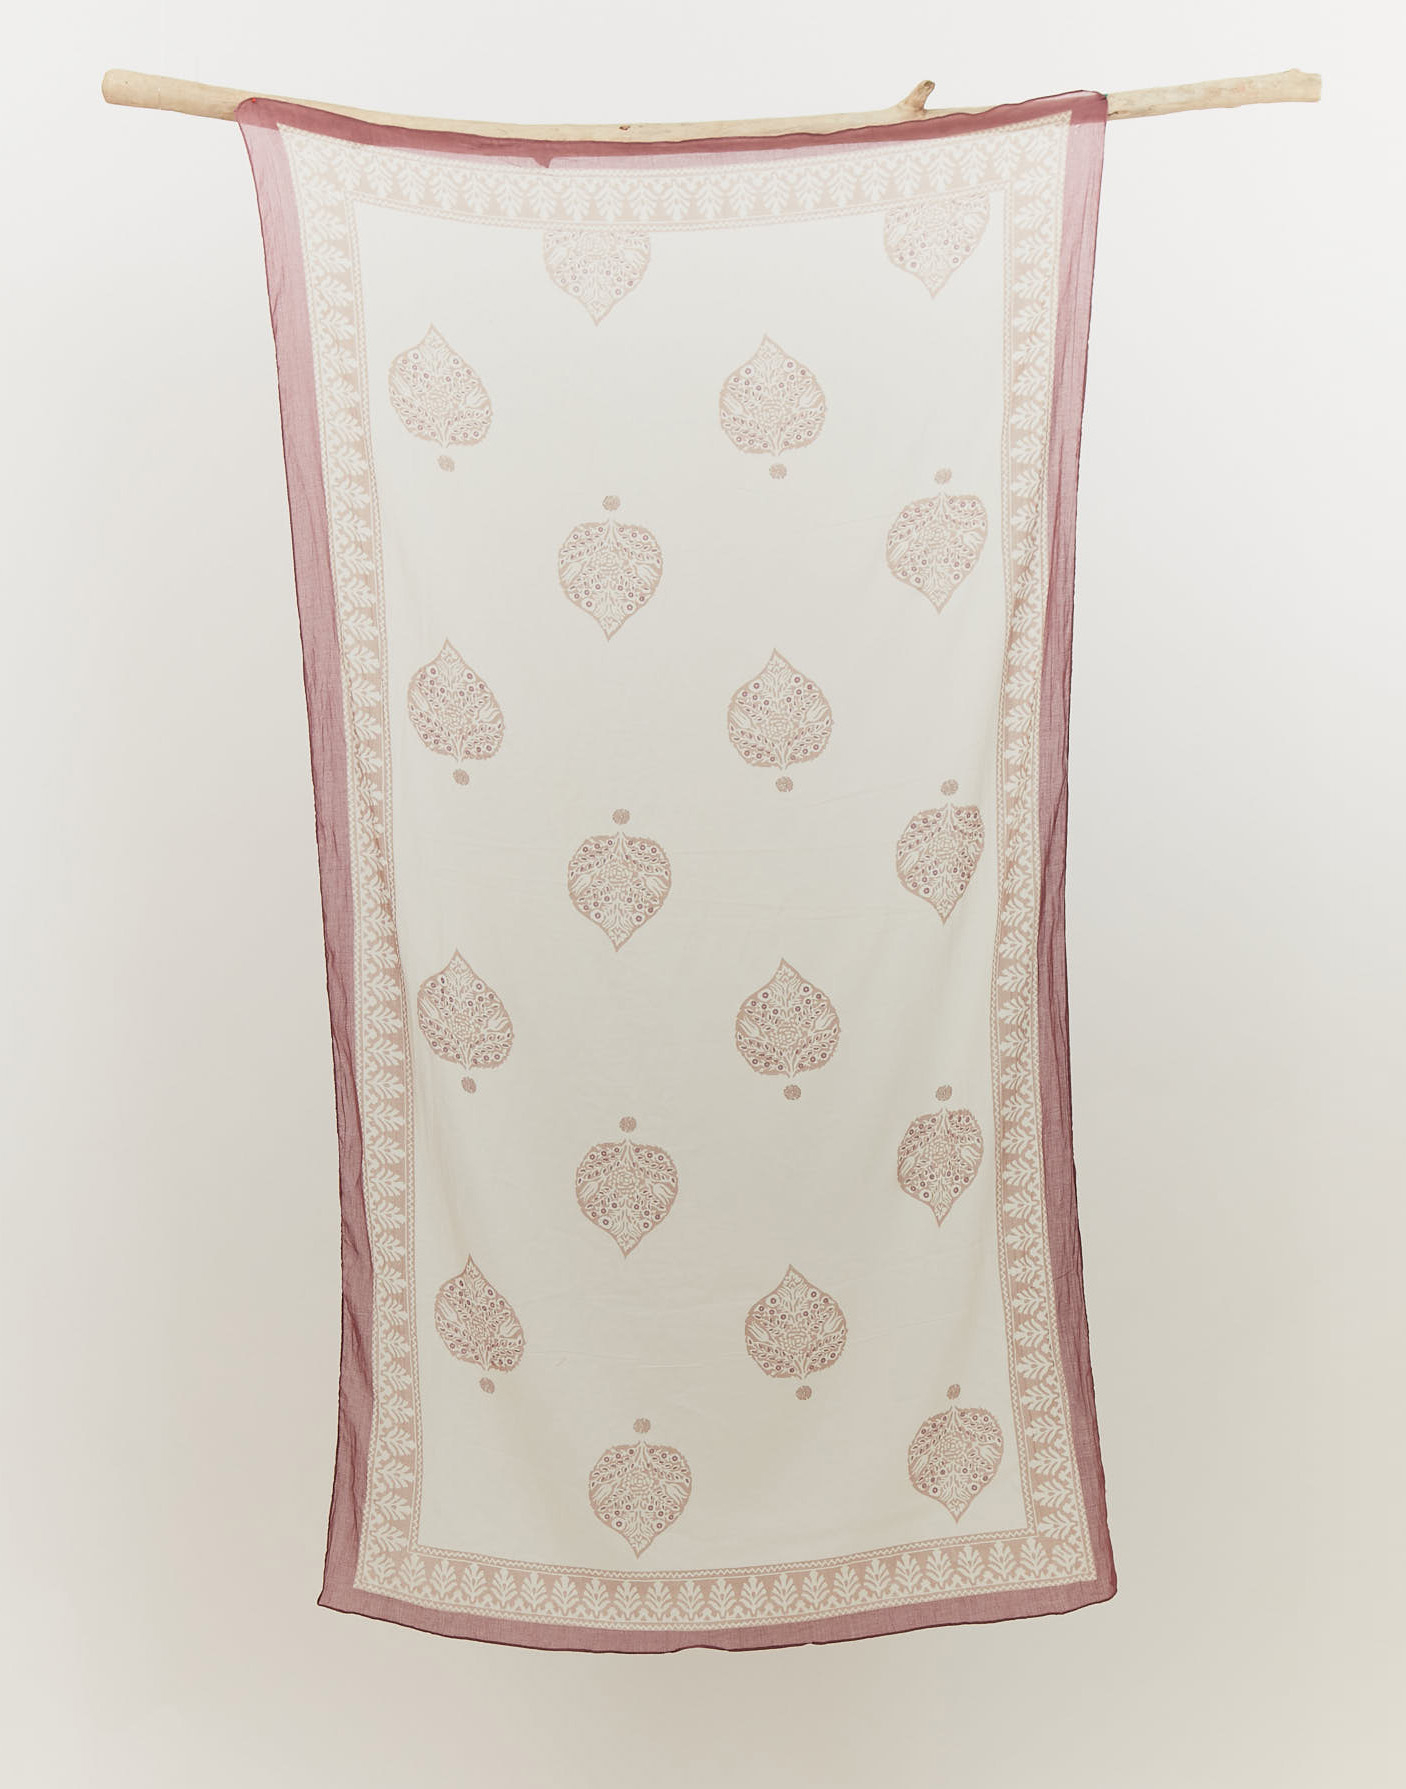 Stamp cotton scarf